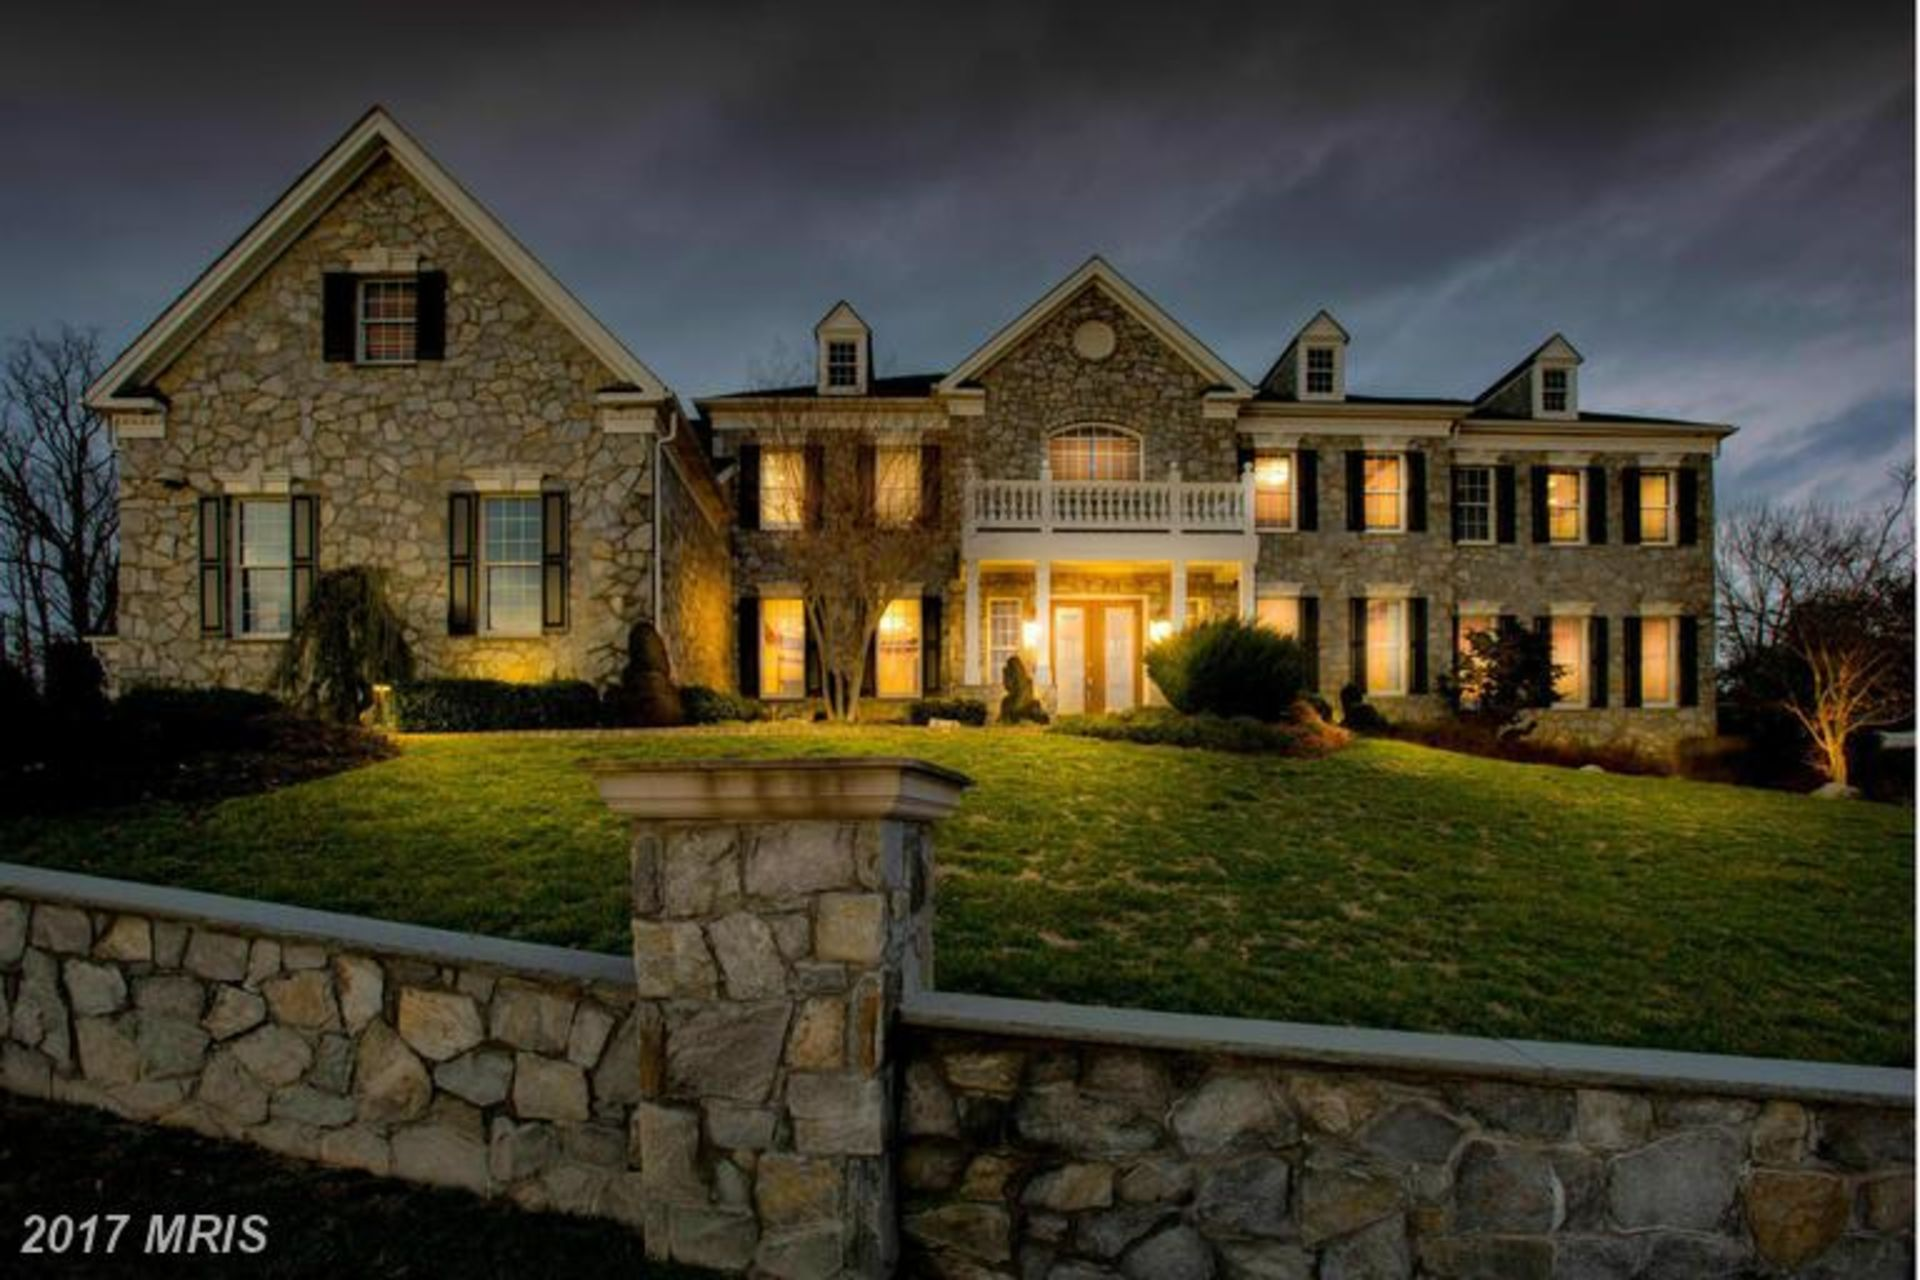 3 Most Expensive Homes for Sale in Ashburn